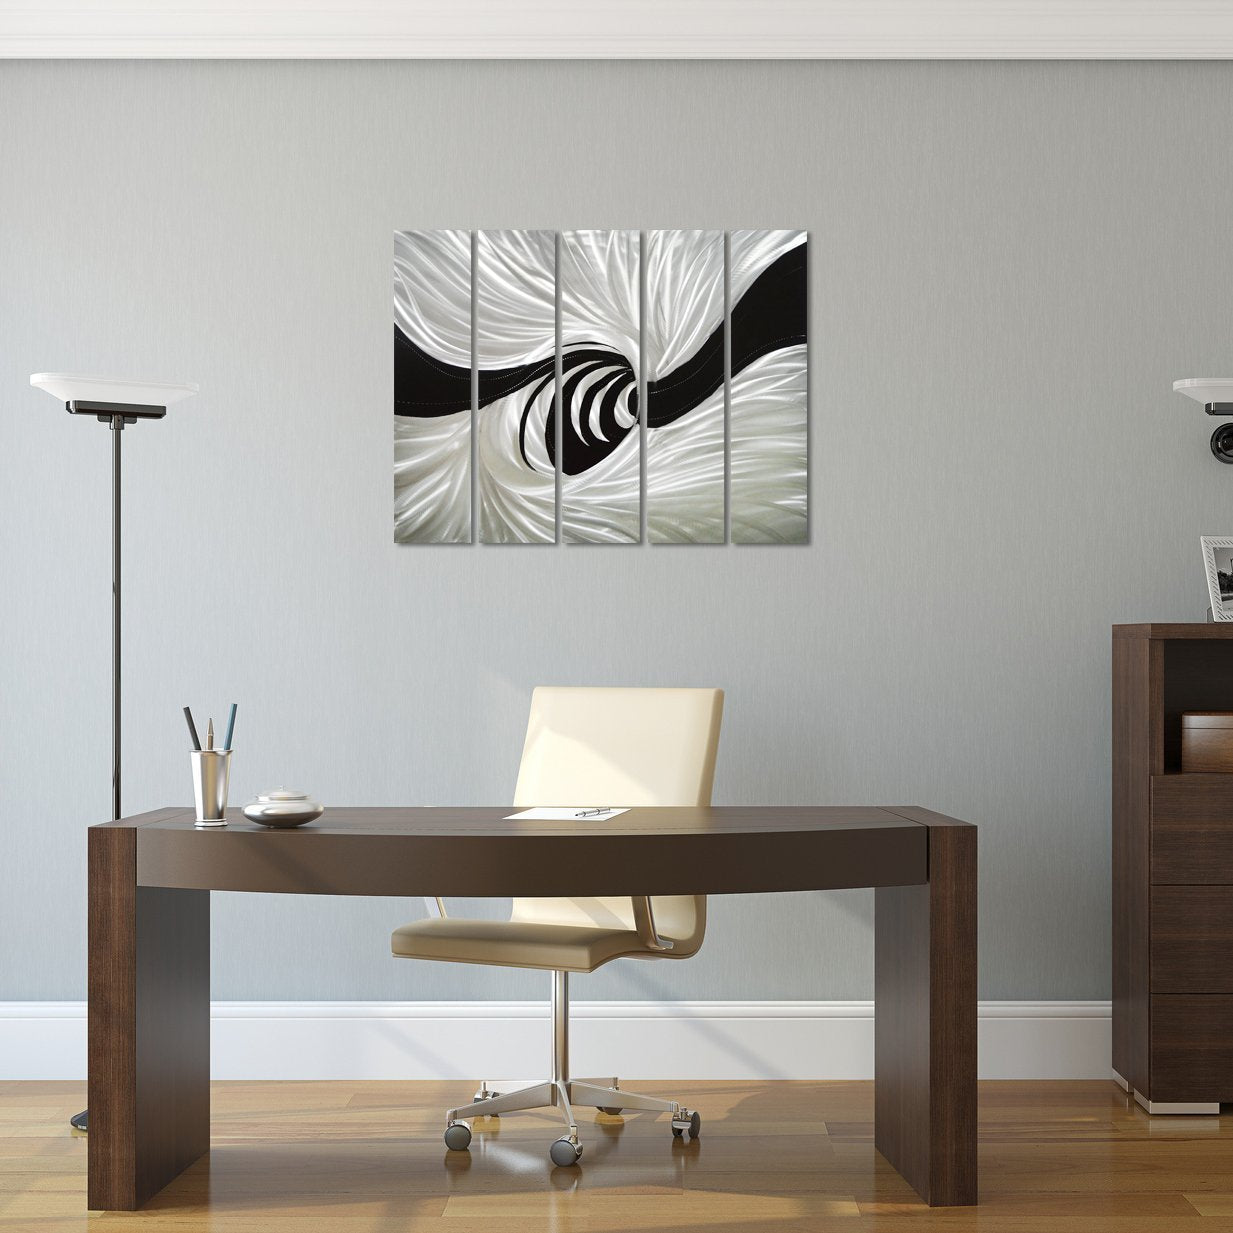 Silver Worm Hole Abstract Metal Wall Art Decor   Black And Silver Hanging  Sculpture Of 5 ...